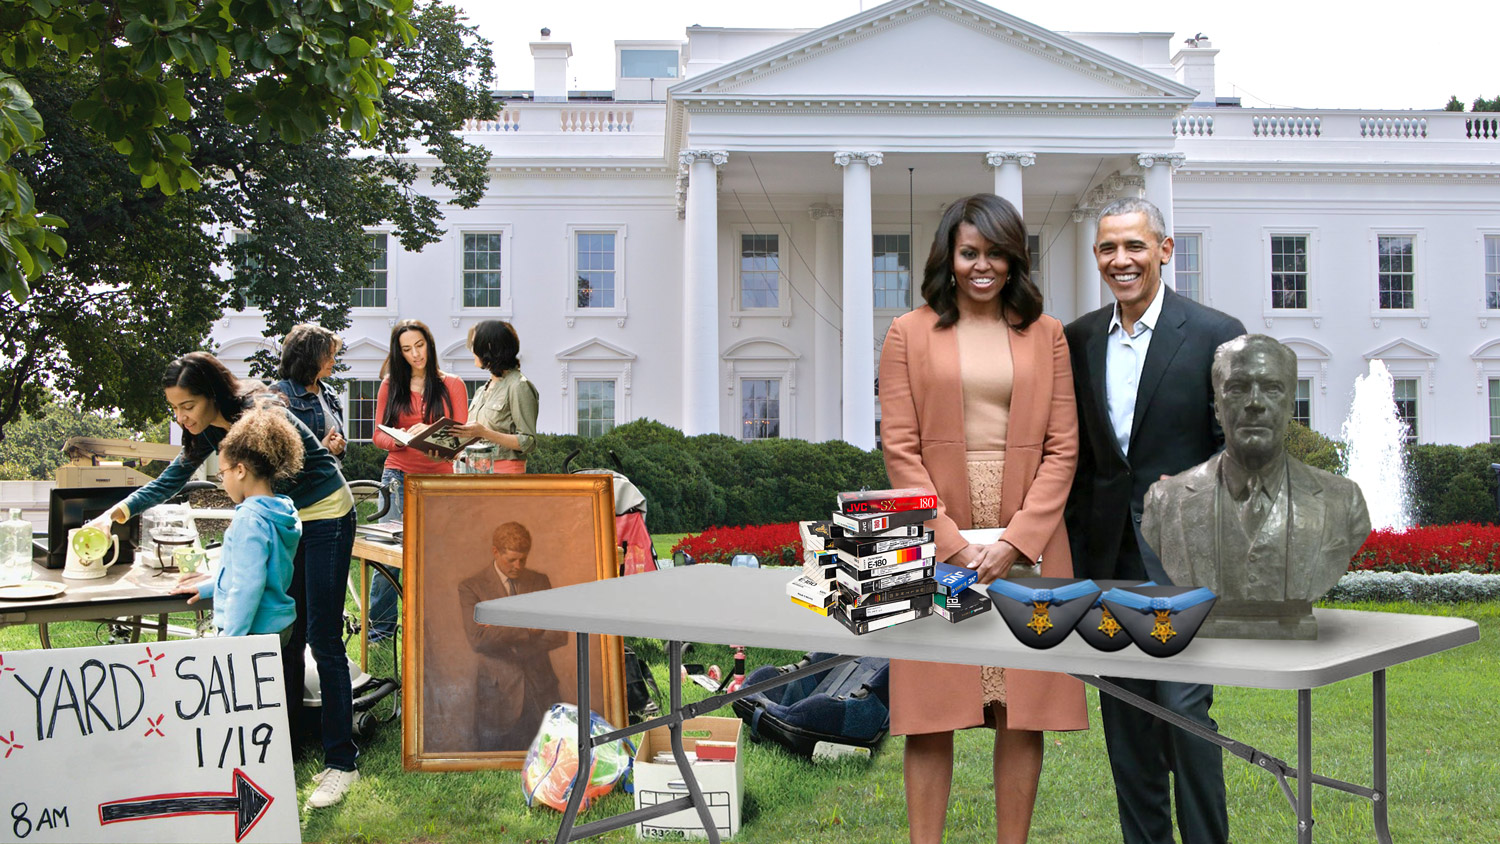 Barack and Michelle Obama Host Their Annual Yard Sale Outside the White House